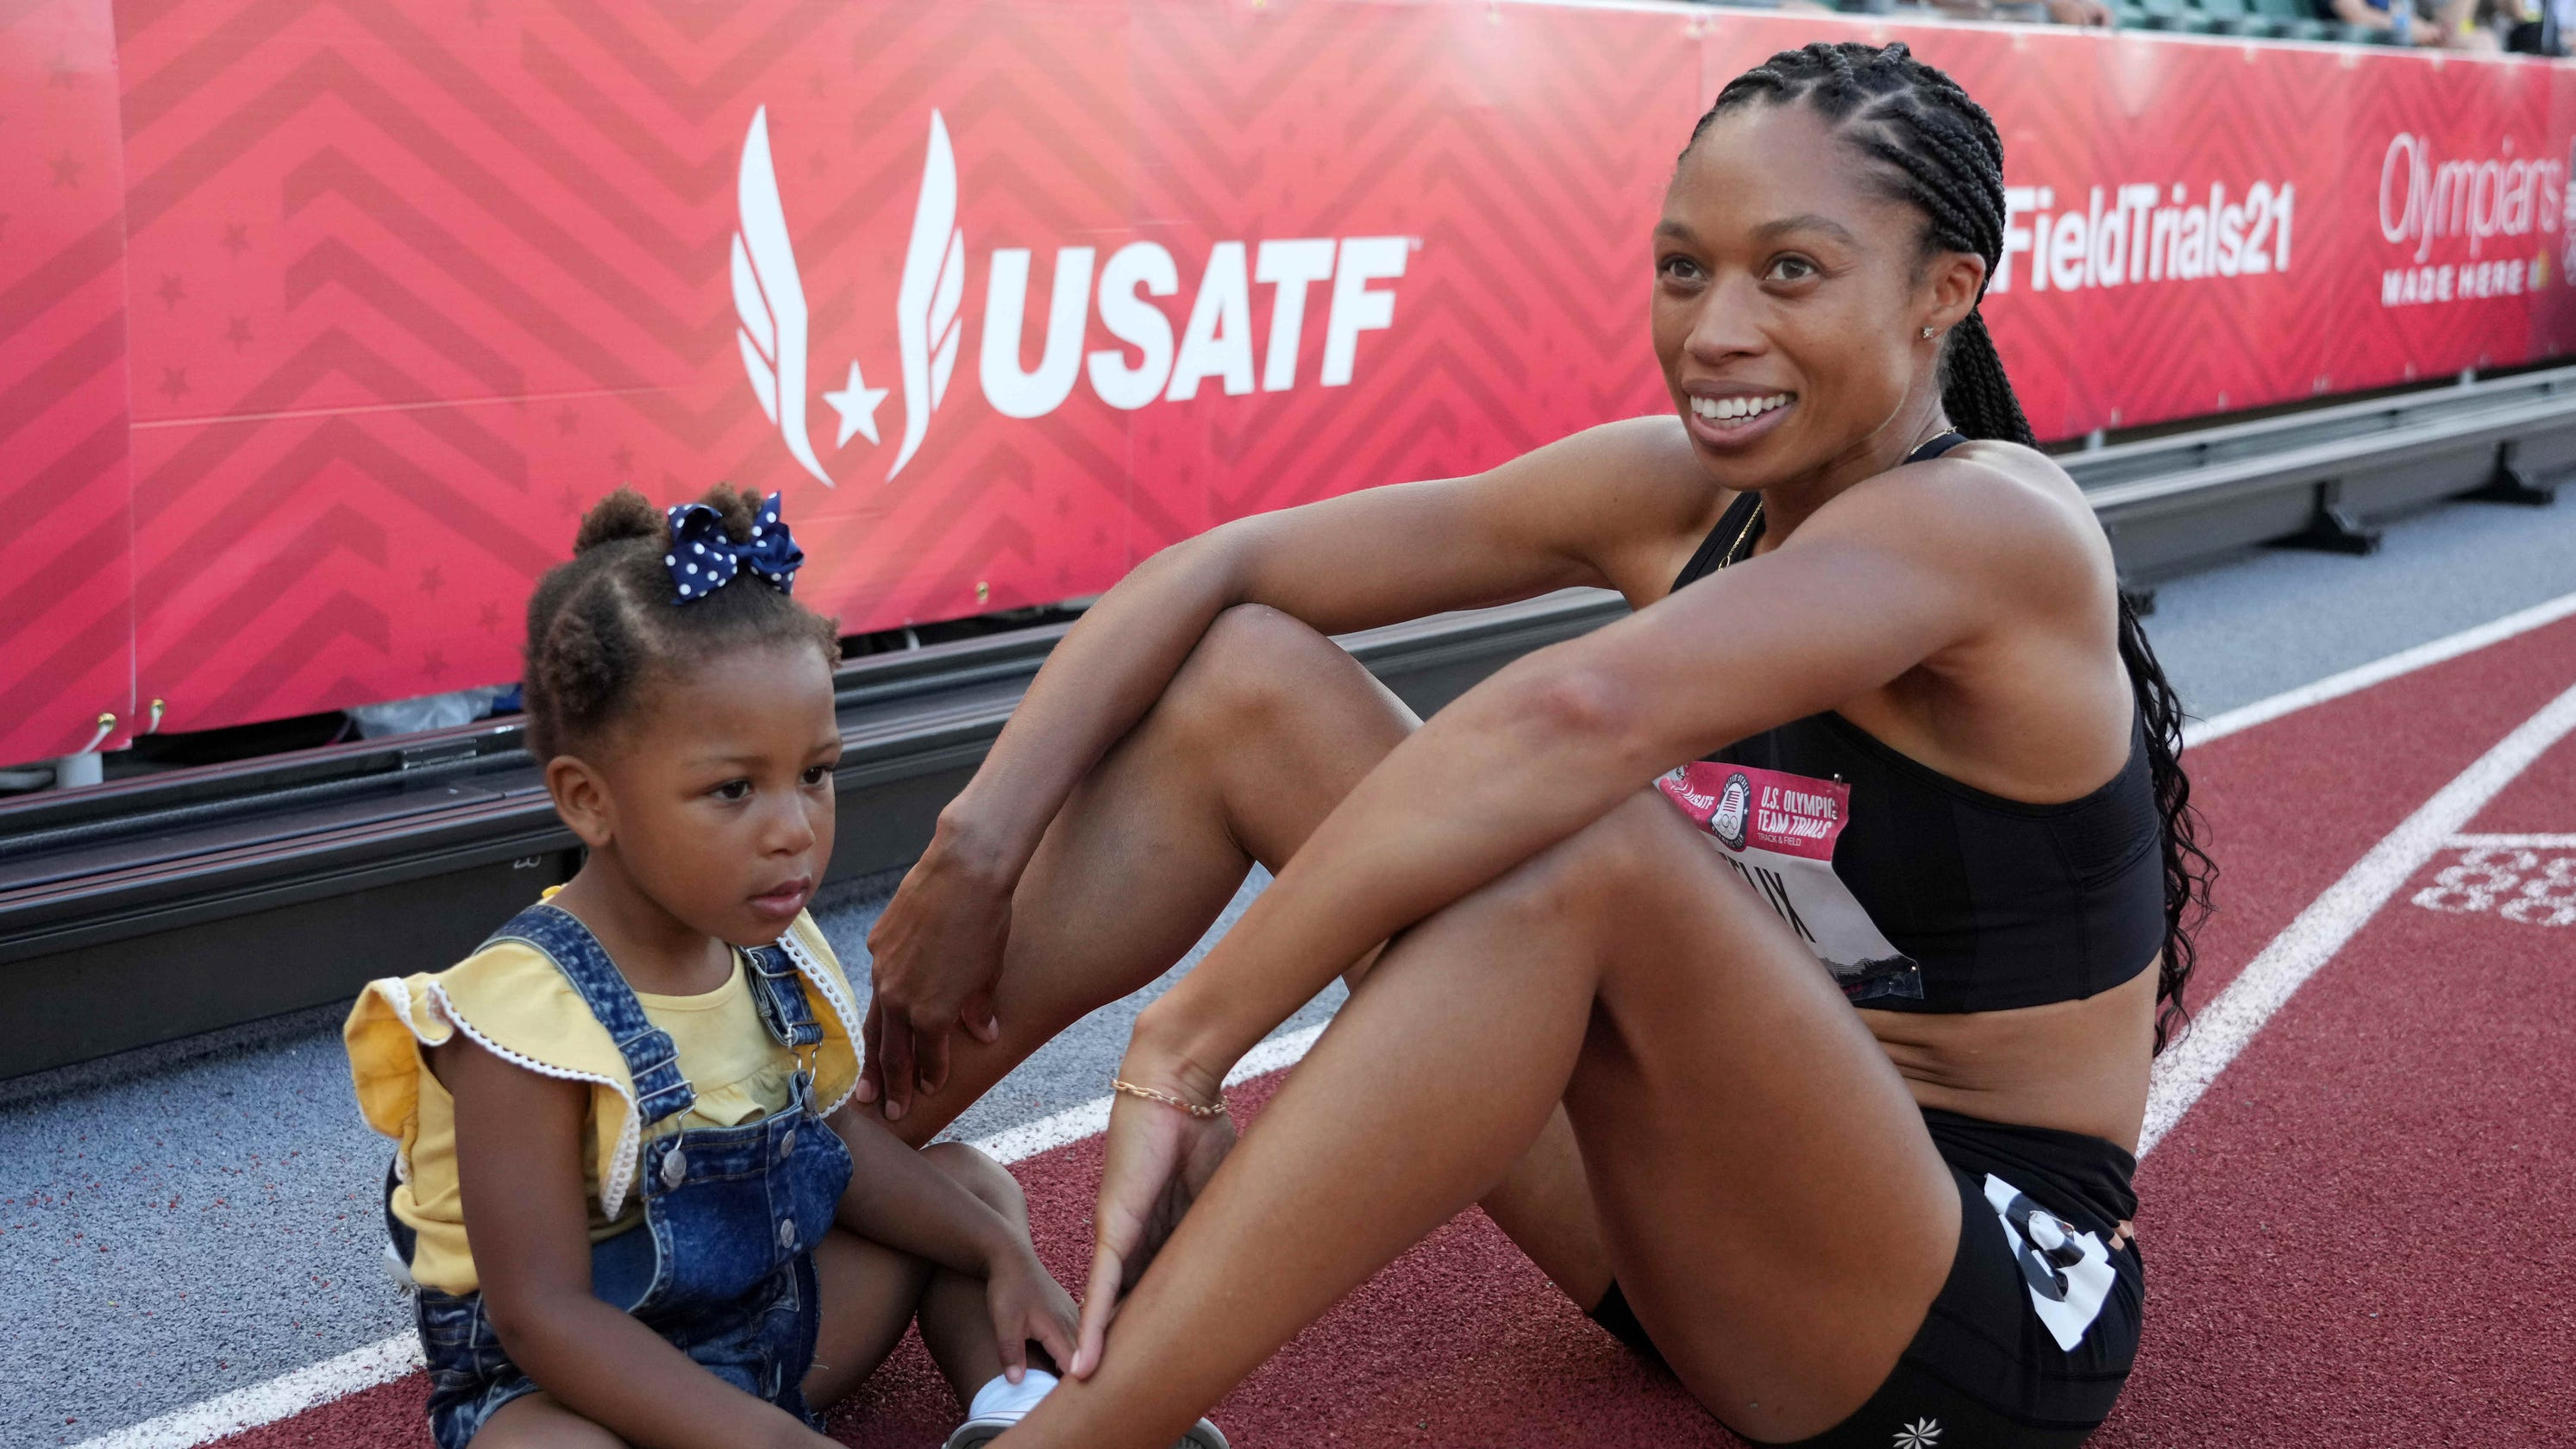 Two years after fight with Nike, Allyson Felix launches her own shoe company